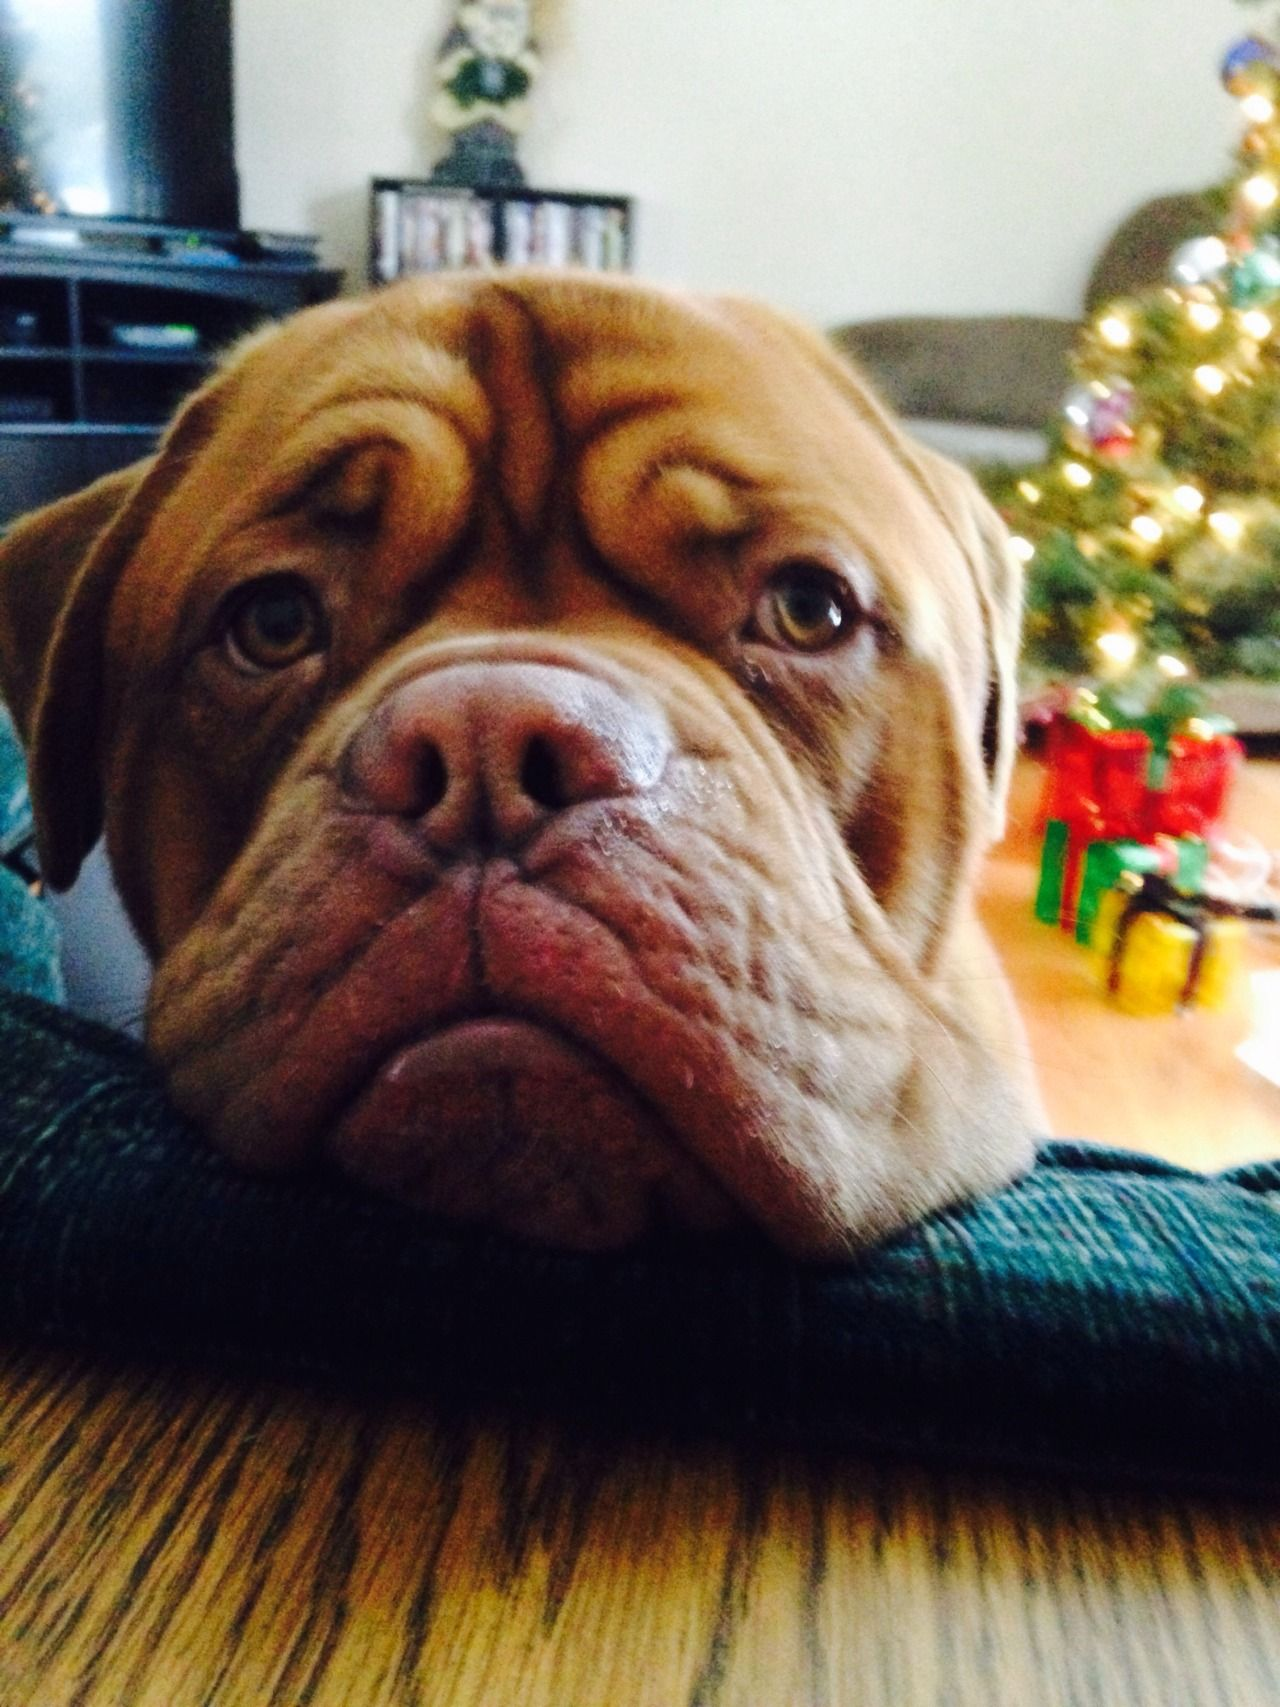 This Is Brutus The French Mastiff He Looks Big And Mean But Hes